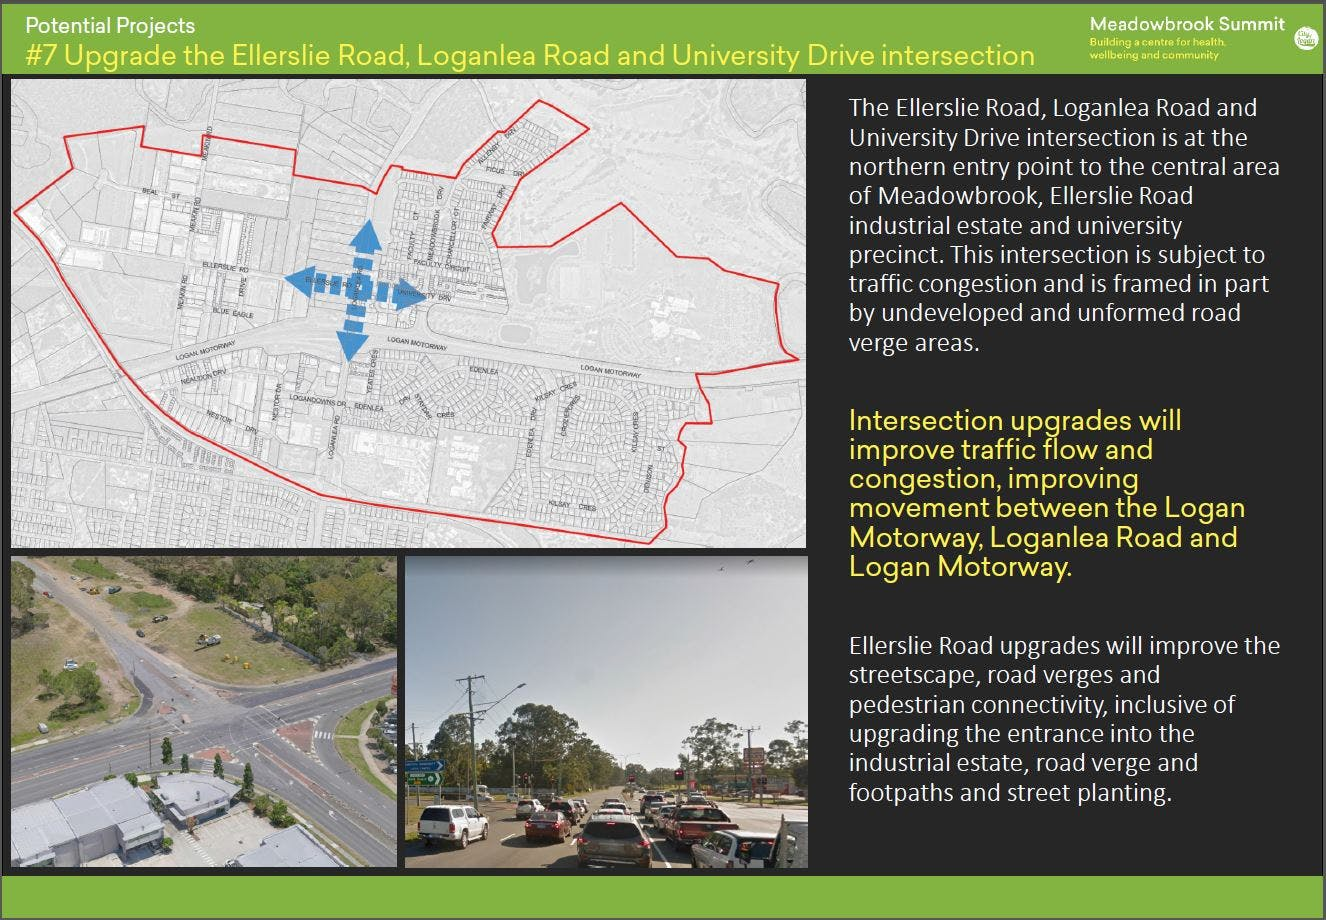 7. Upgrade the Ellerslie Rd, Loganlea Rd and University Dr intersection